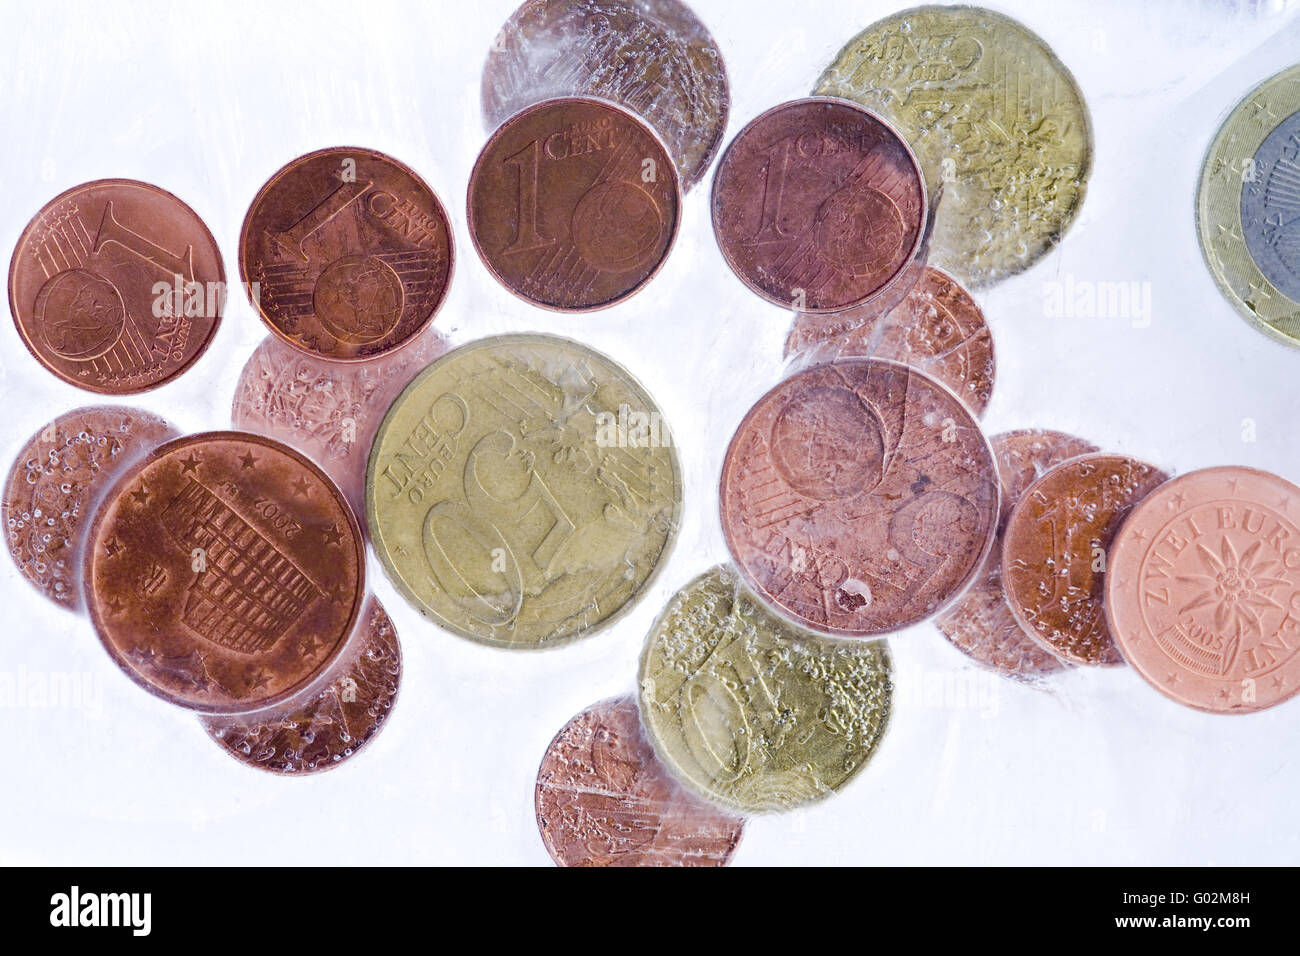 coins in ice - Stock Image